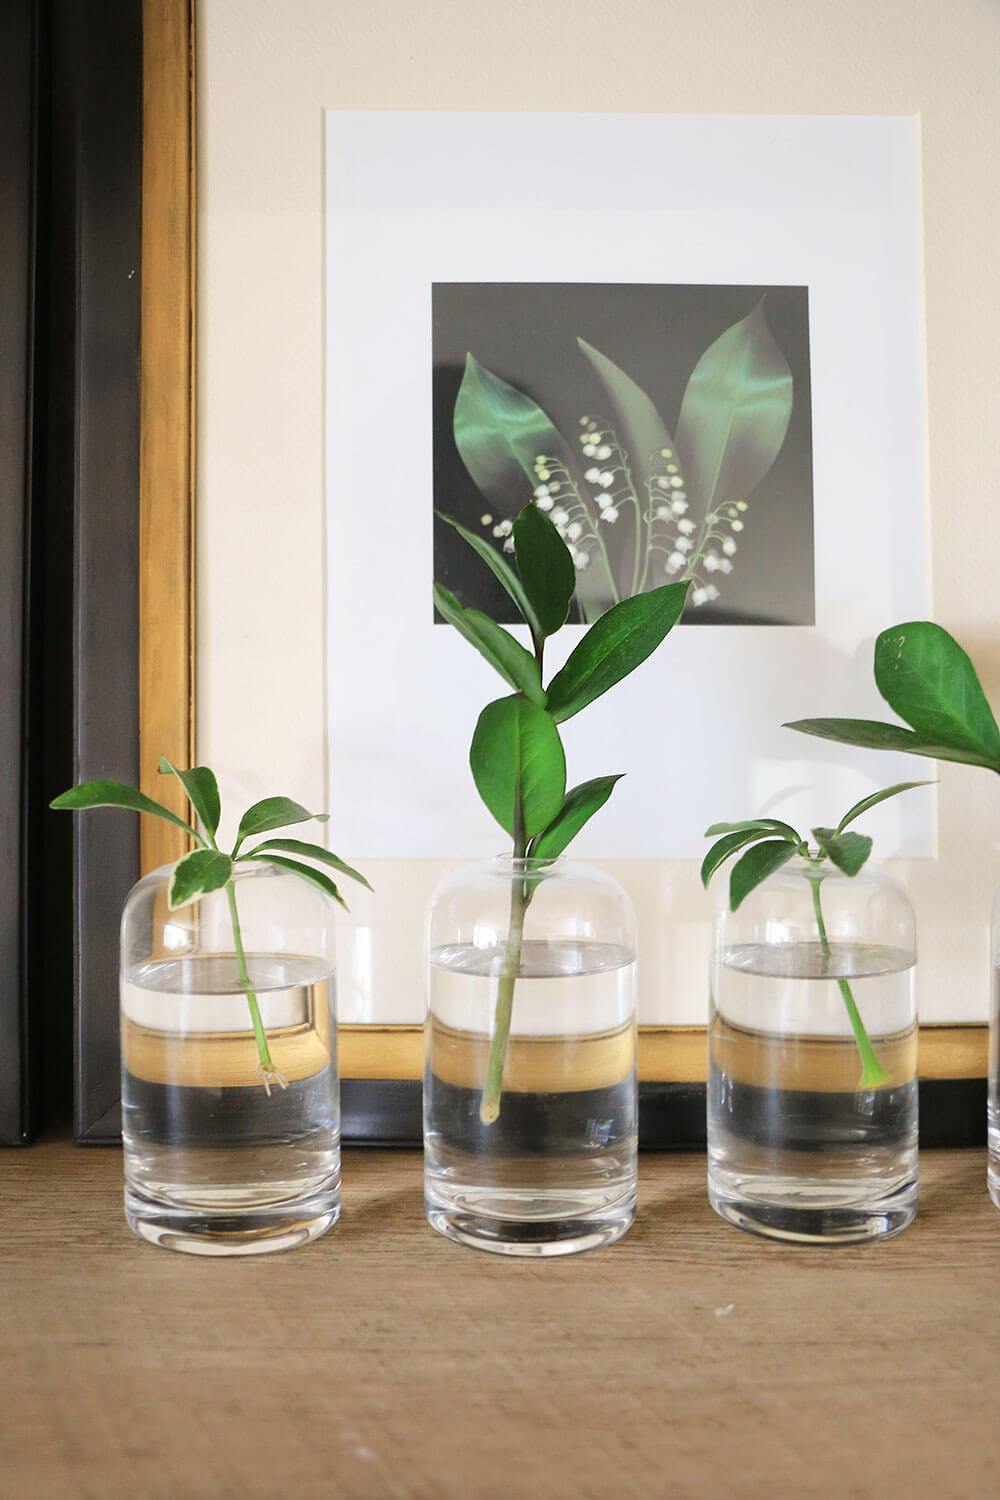 Bud-vases-with-plant-cuttings